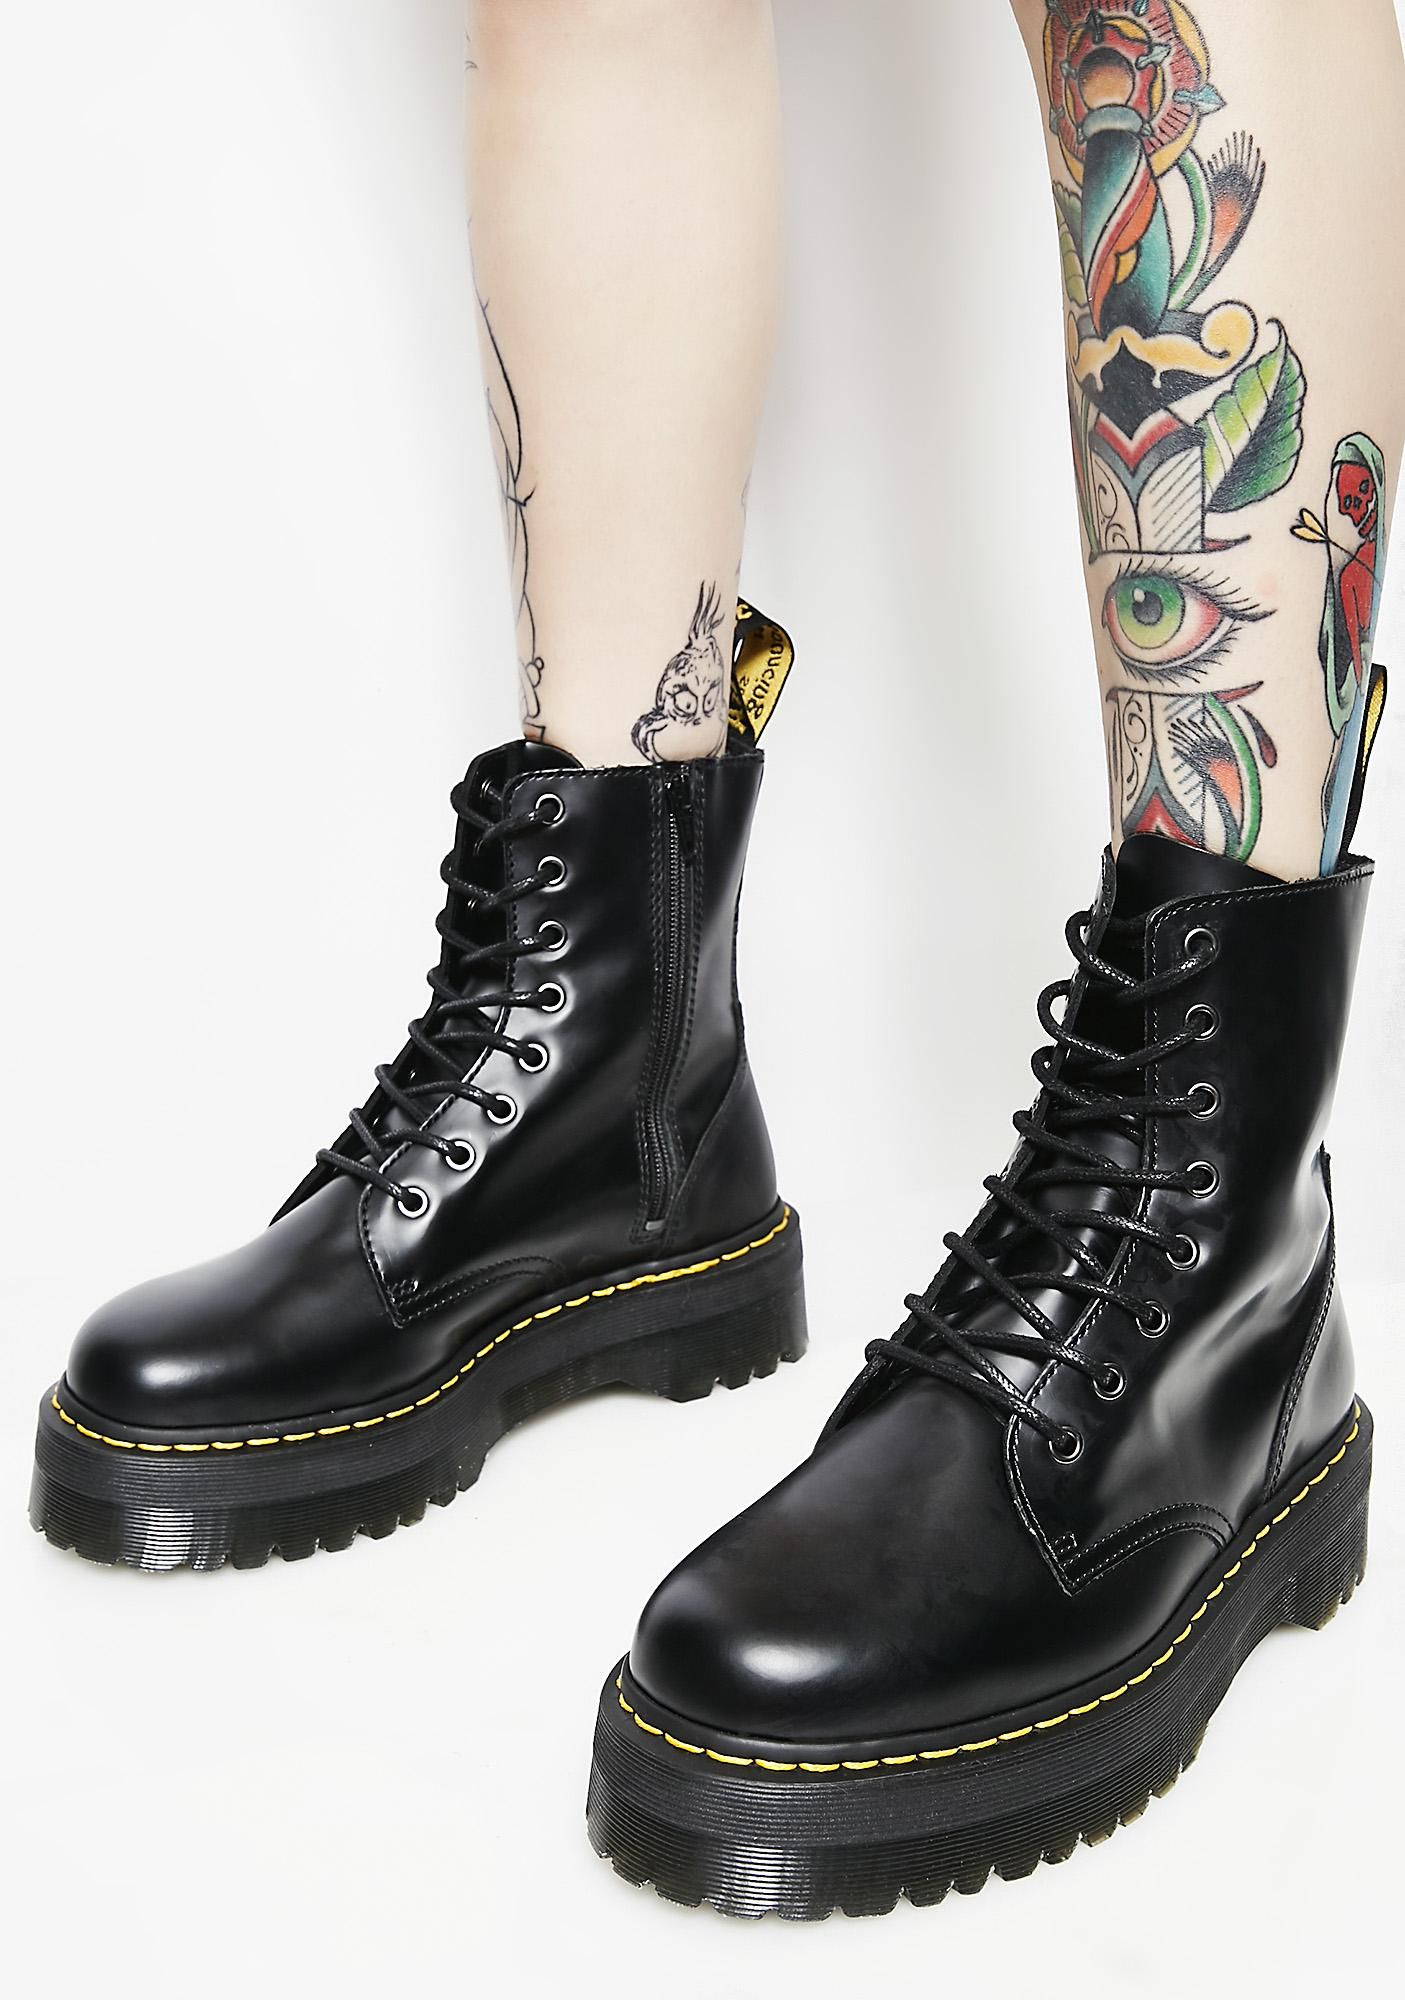 41391a509 Jadon 8 Eye Boots | Clothing Wishlist | Boots, Jungle boots, Dr martens